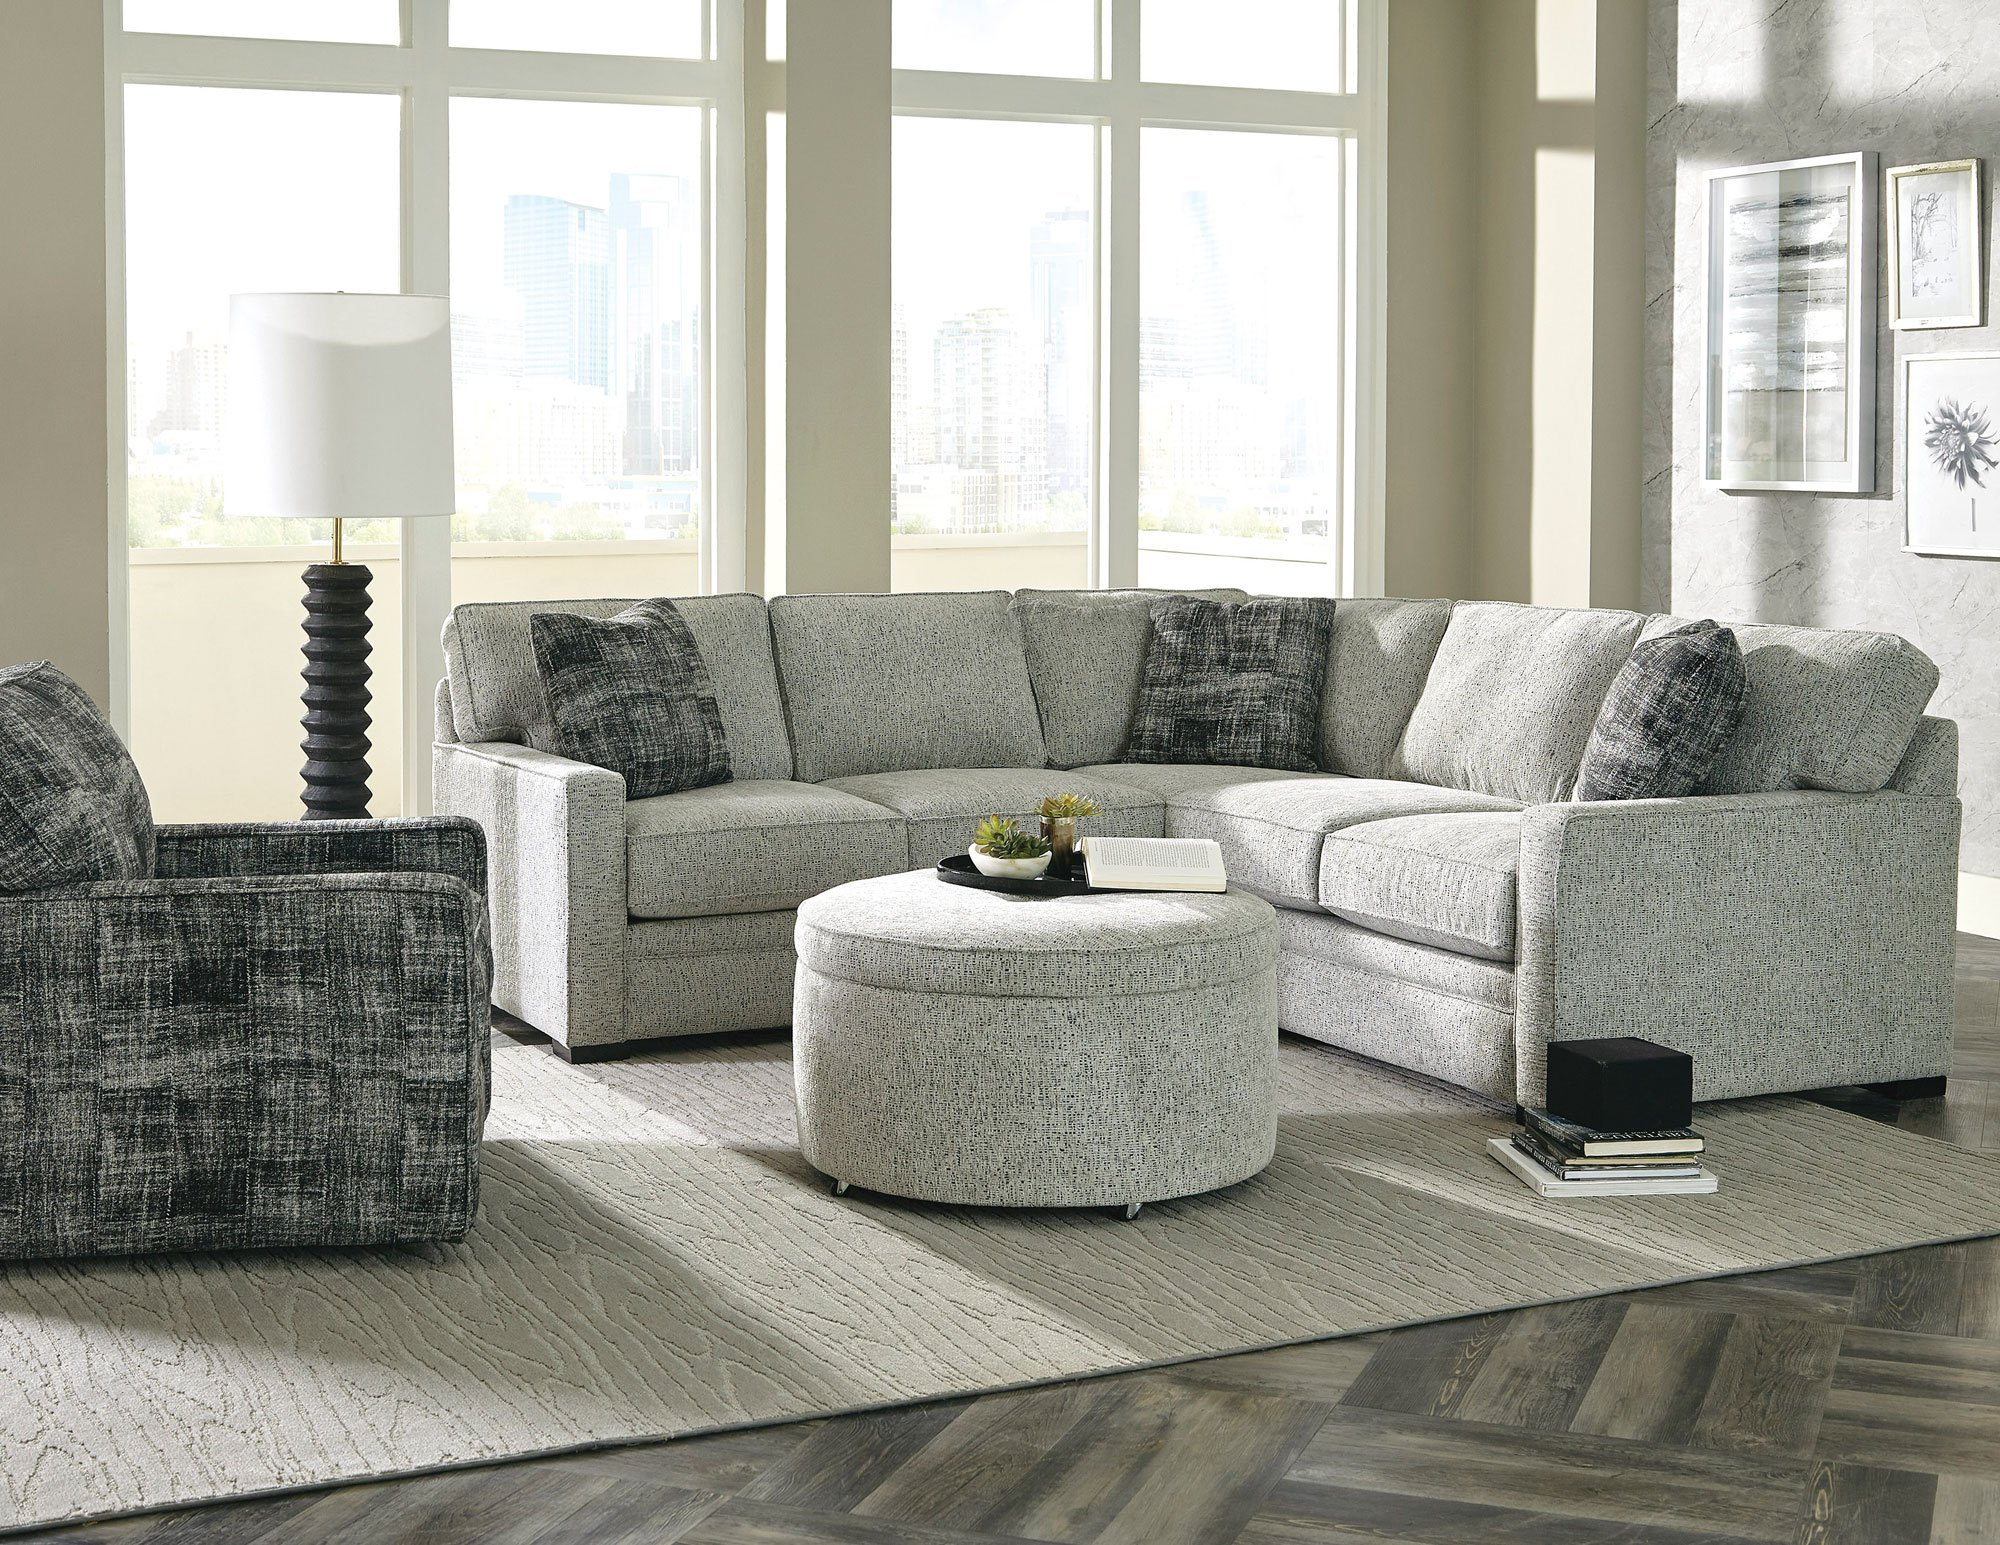 willey patio rc memorial on furniture set sale savings sofas and sales more sofa gallery sectional day huge couch